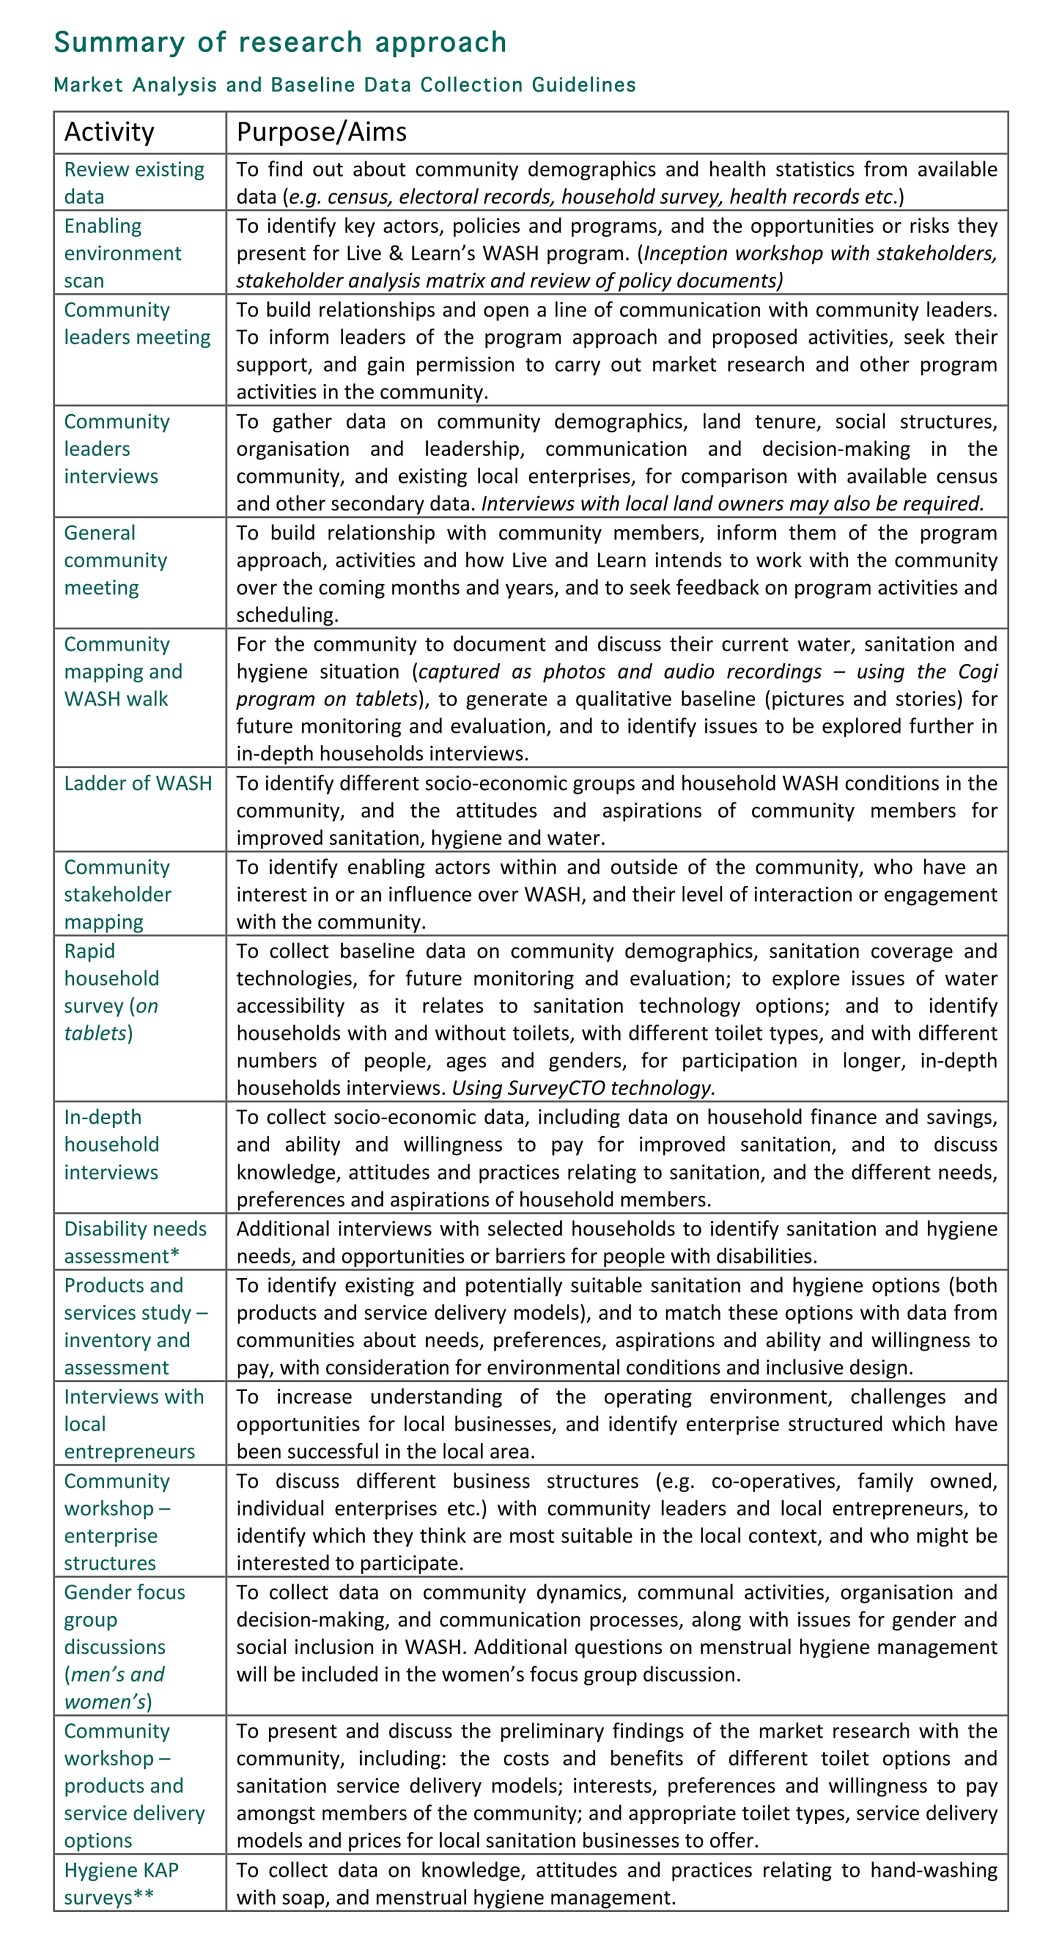 Microsoft Word - Summary of research approach.docx